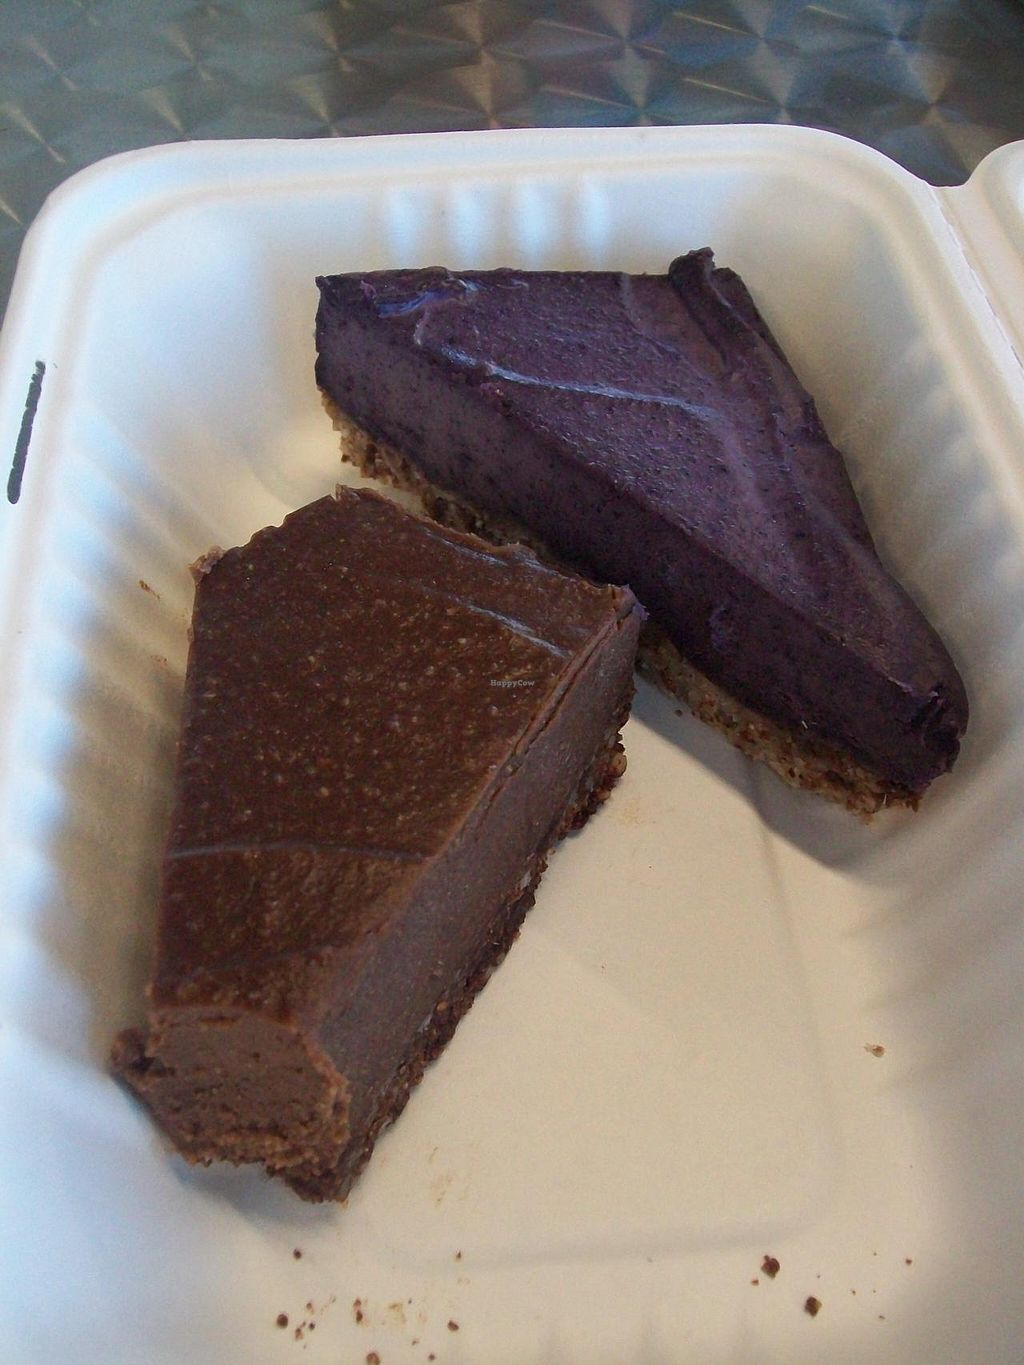 Photo of CLOSED: Fruition - Seaport Farmers' Market  by Eco Cay <br/>Delicious vegan mocha cheesecake and blueberry cheesecake! The blueberry is my favorite! <br/> May 3, 2014  - <a href='/contact/abuse/image/35417/69218'>Report</a>